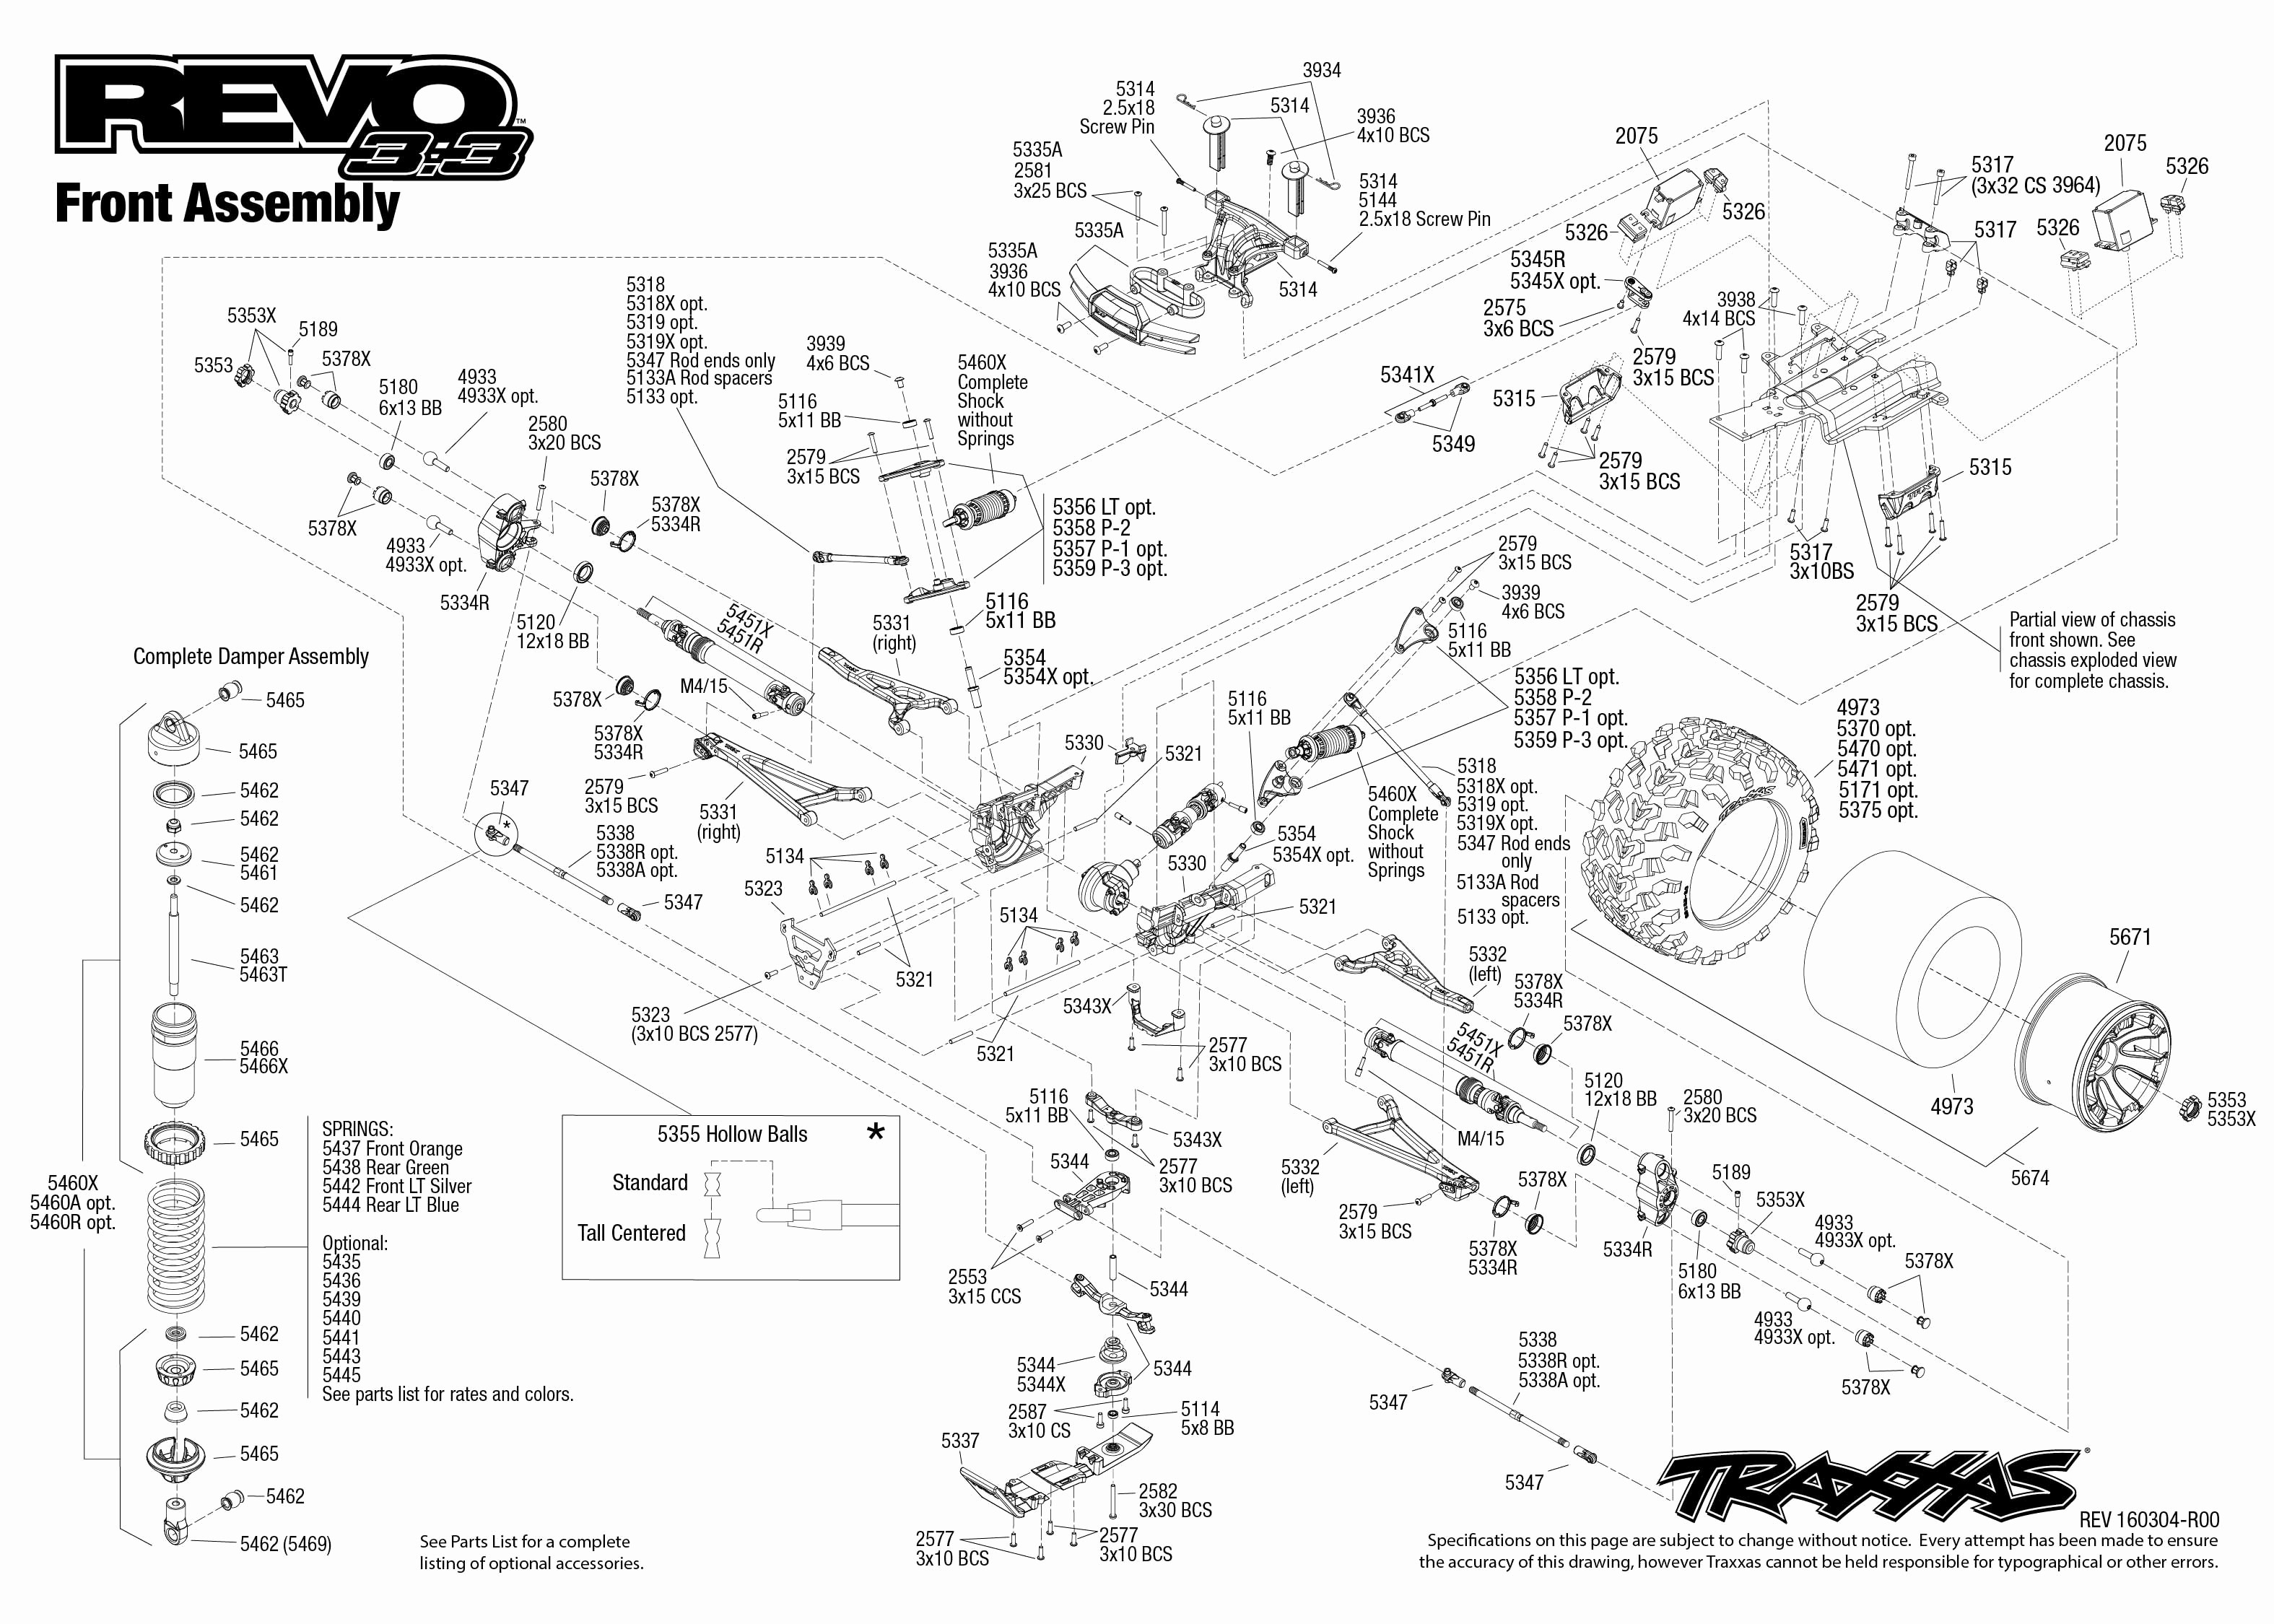 [WRG-0526] Traxxas Slash 4x4 Wiring Diagram